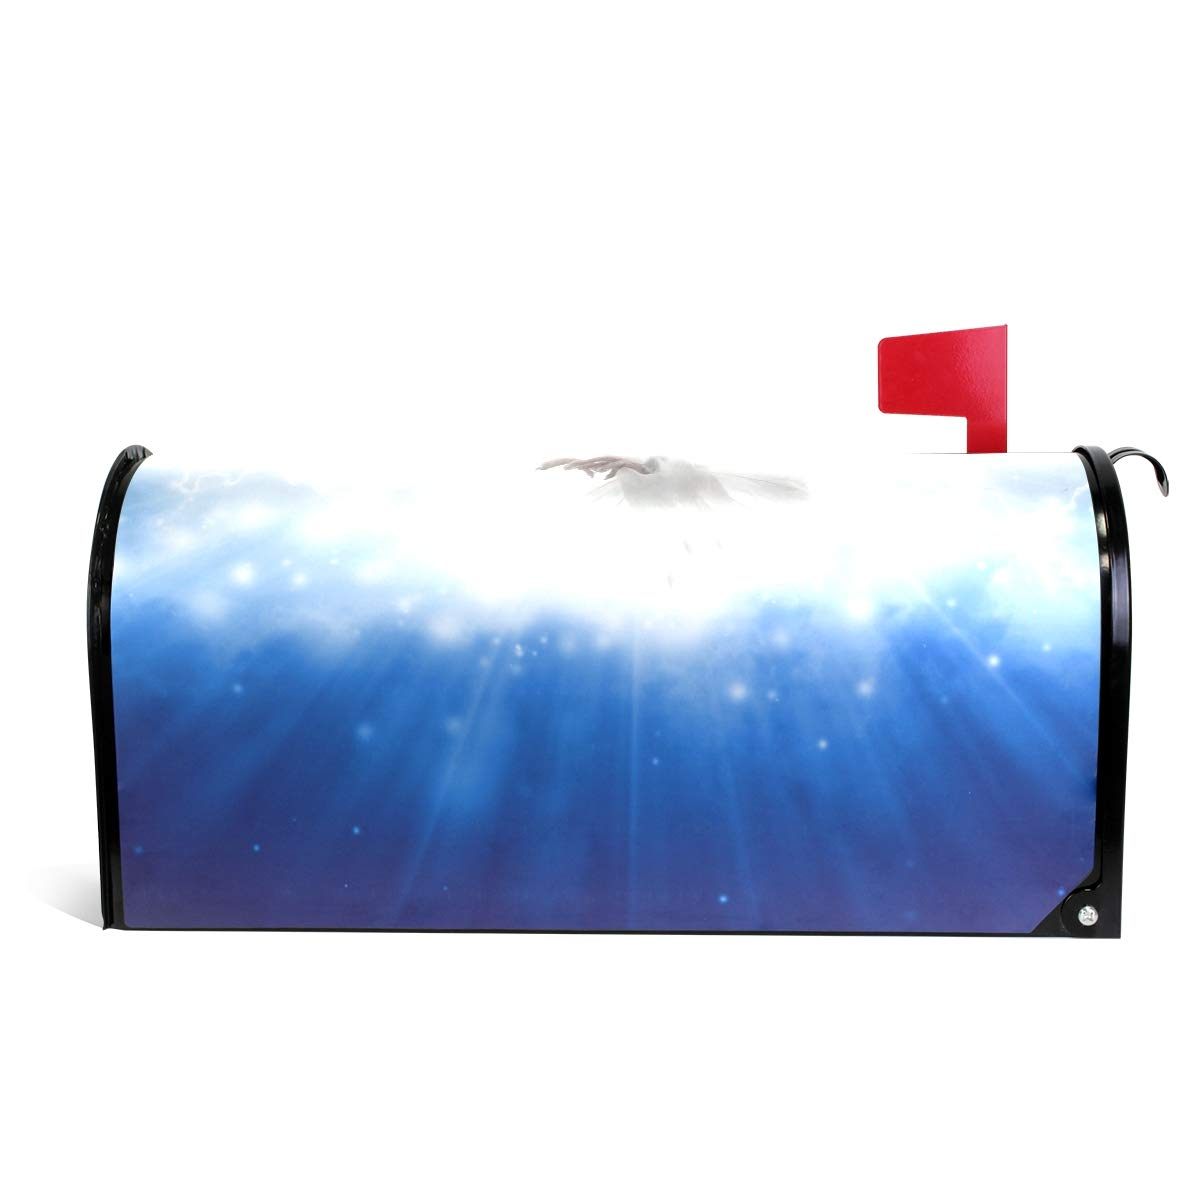 MAPOLO Holy Spirit Bird Flying Sky Light Shines from Heaven Magnetic Mailbox Cover Oversized